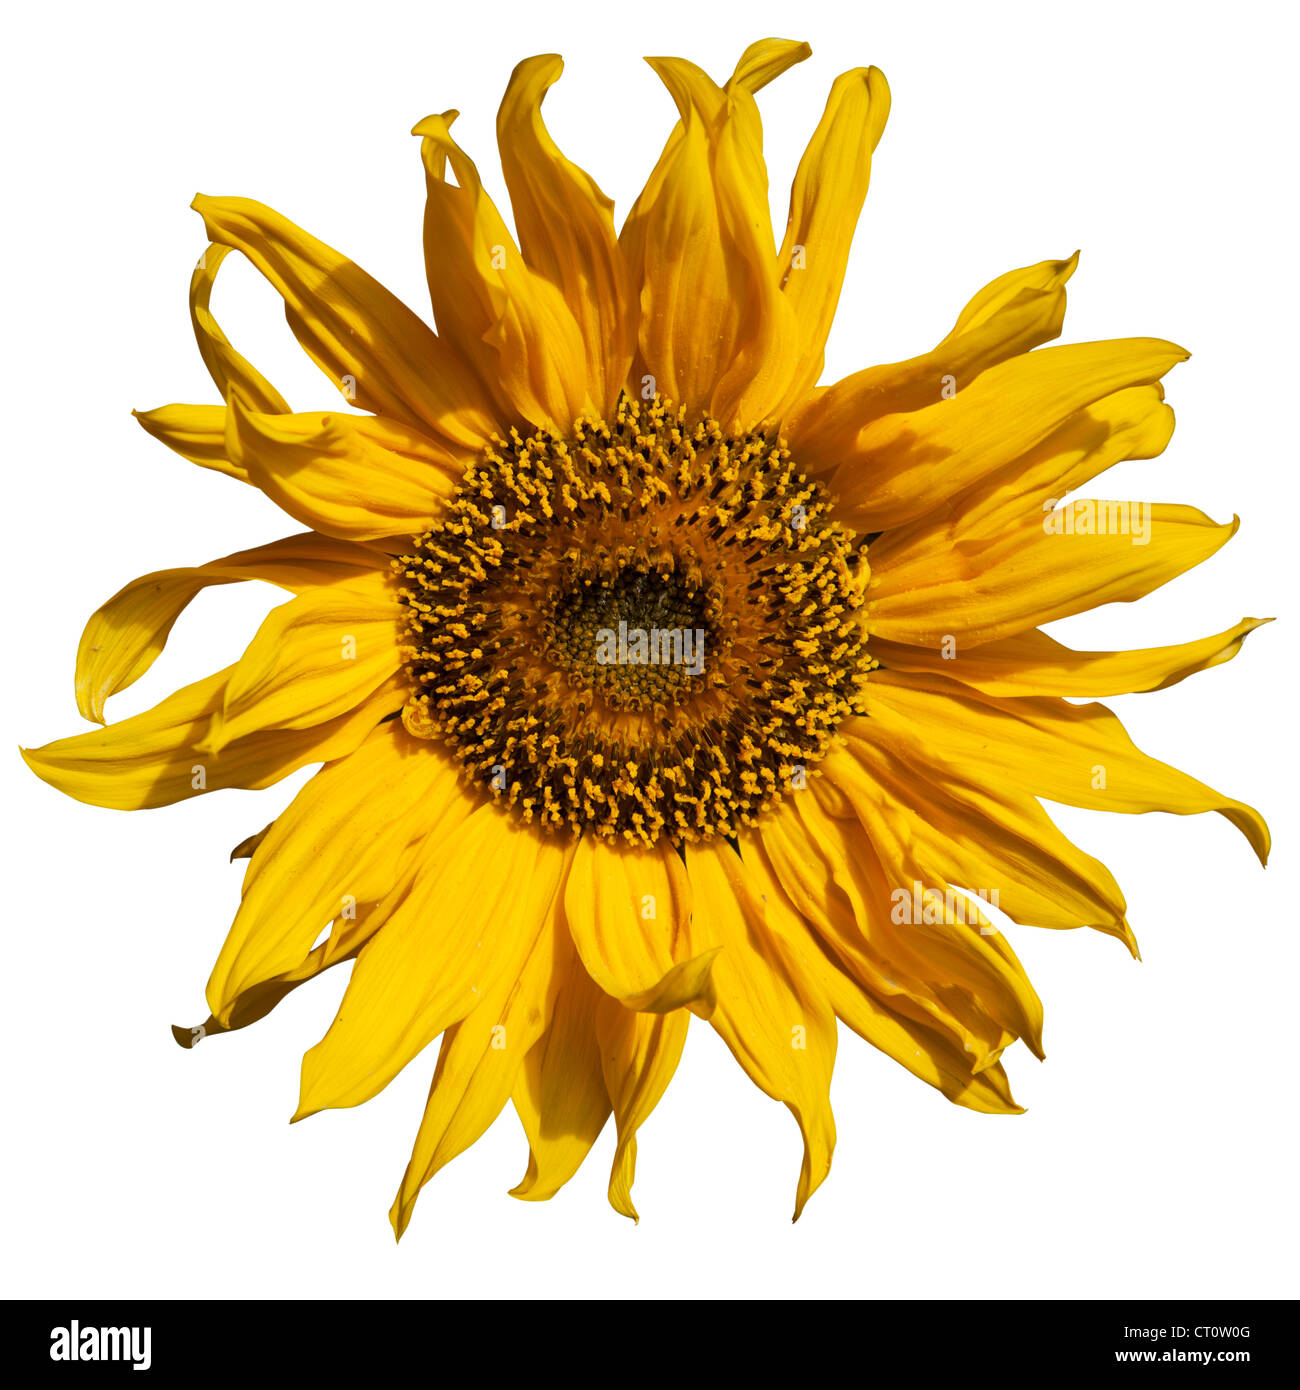 Cut out of a sunflower - Stock Image